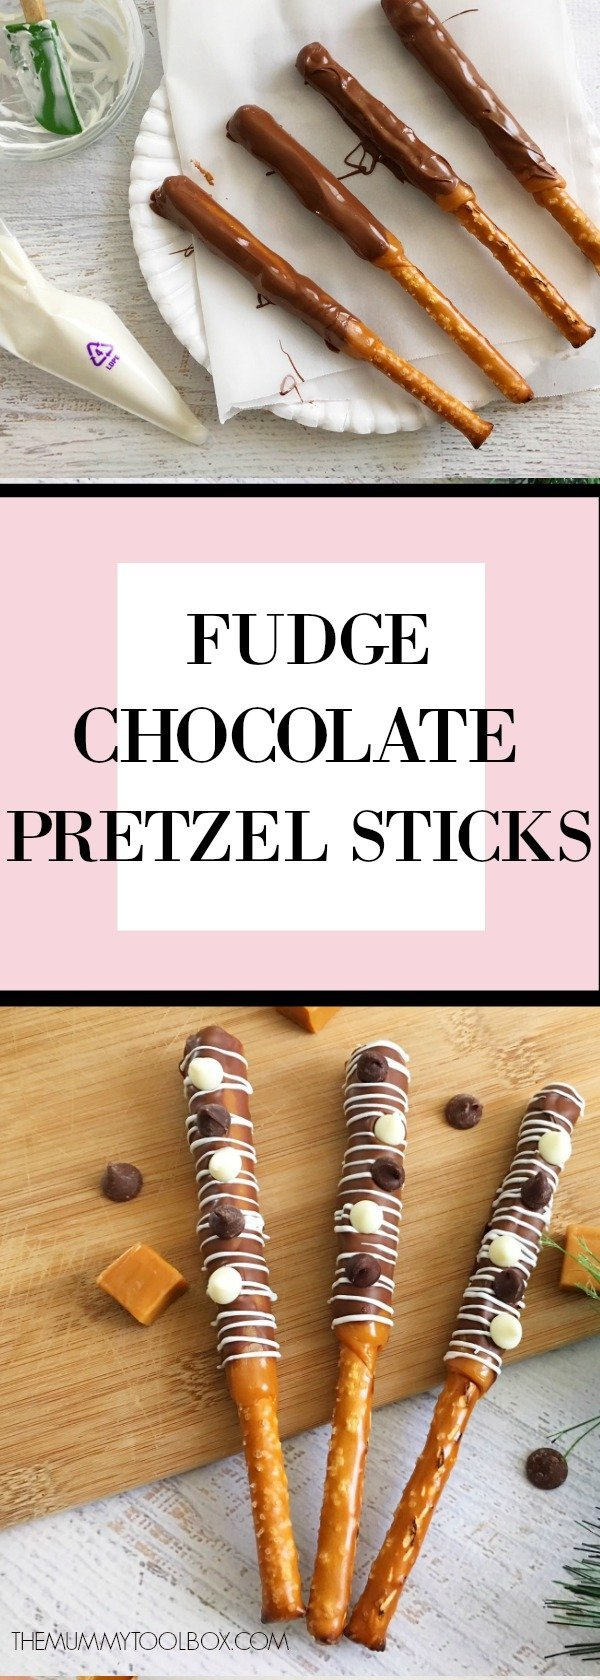 Fudge chocolate pretzel rods. Perfect party snack and delicious sweet and salty. #entertaiingfood #food #delicious #recipeideas #recipes